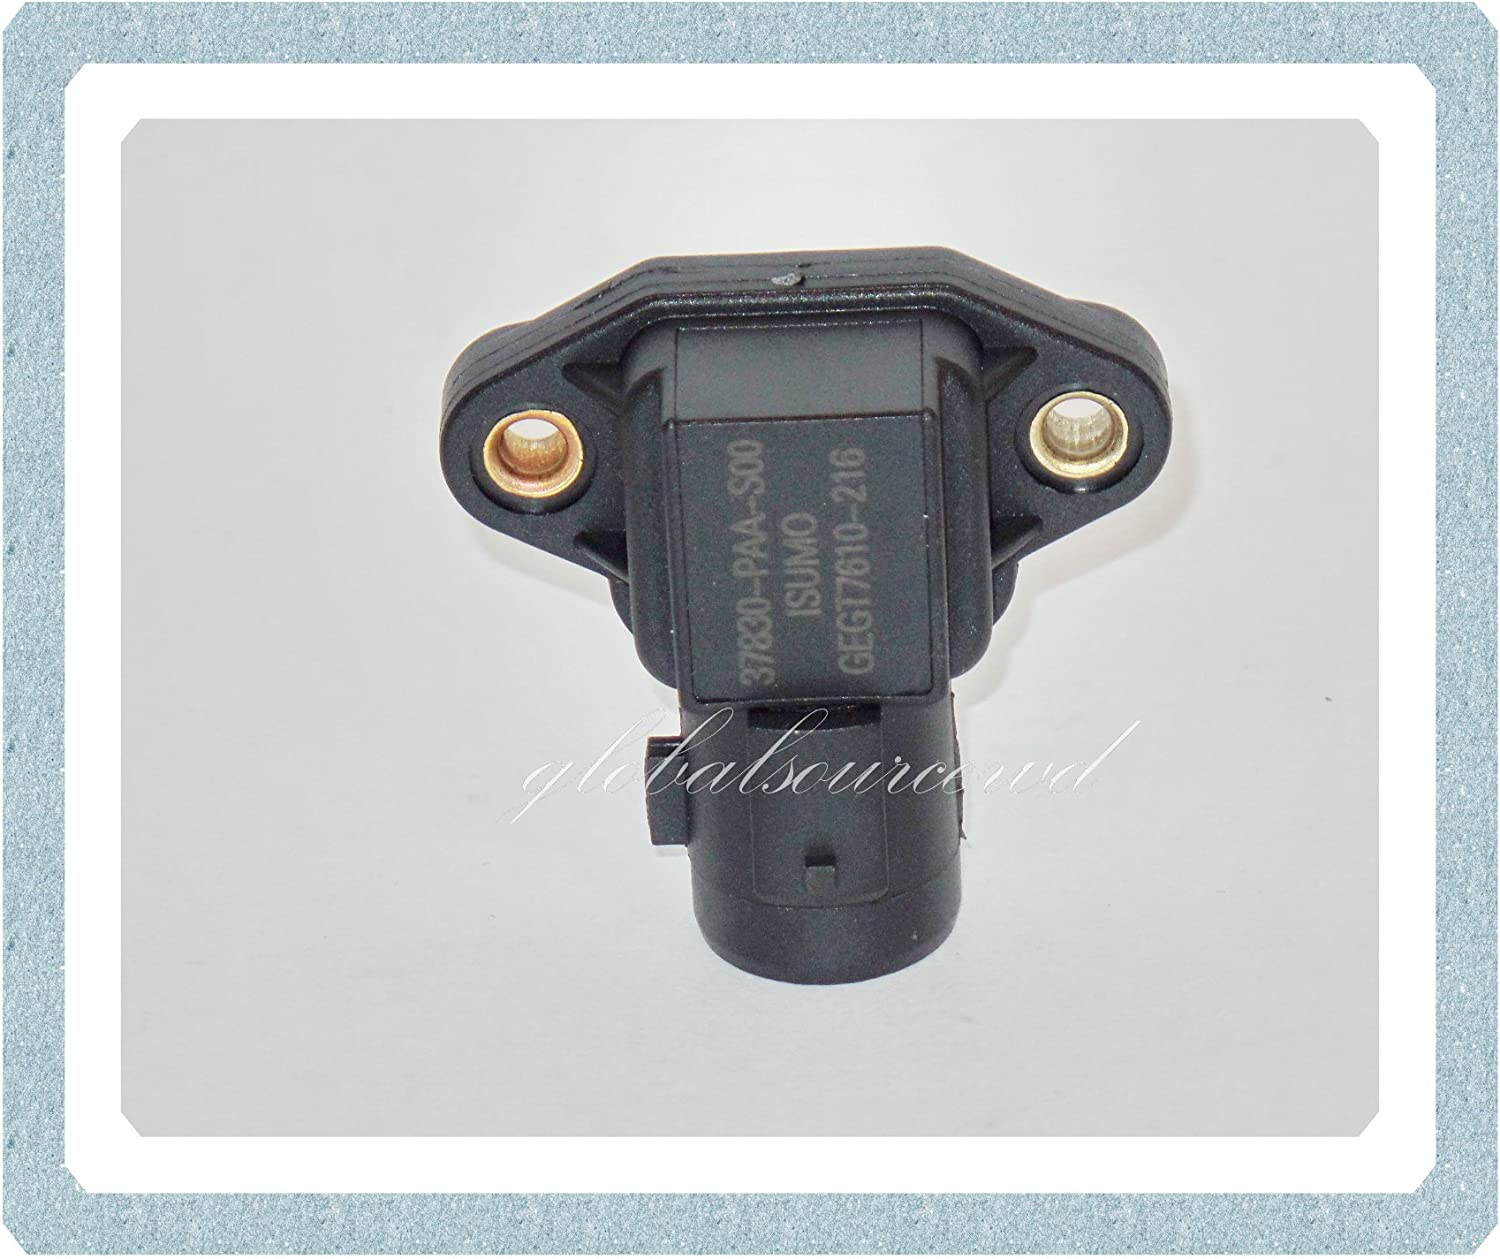 37830-PAA-S00 MAP Sensor compatible Award-winning store with 97-99 Integra Acura Cl Limited time cheap sale